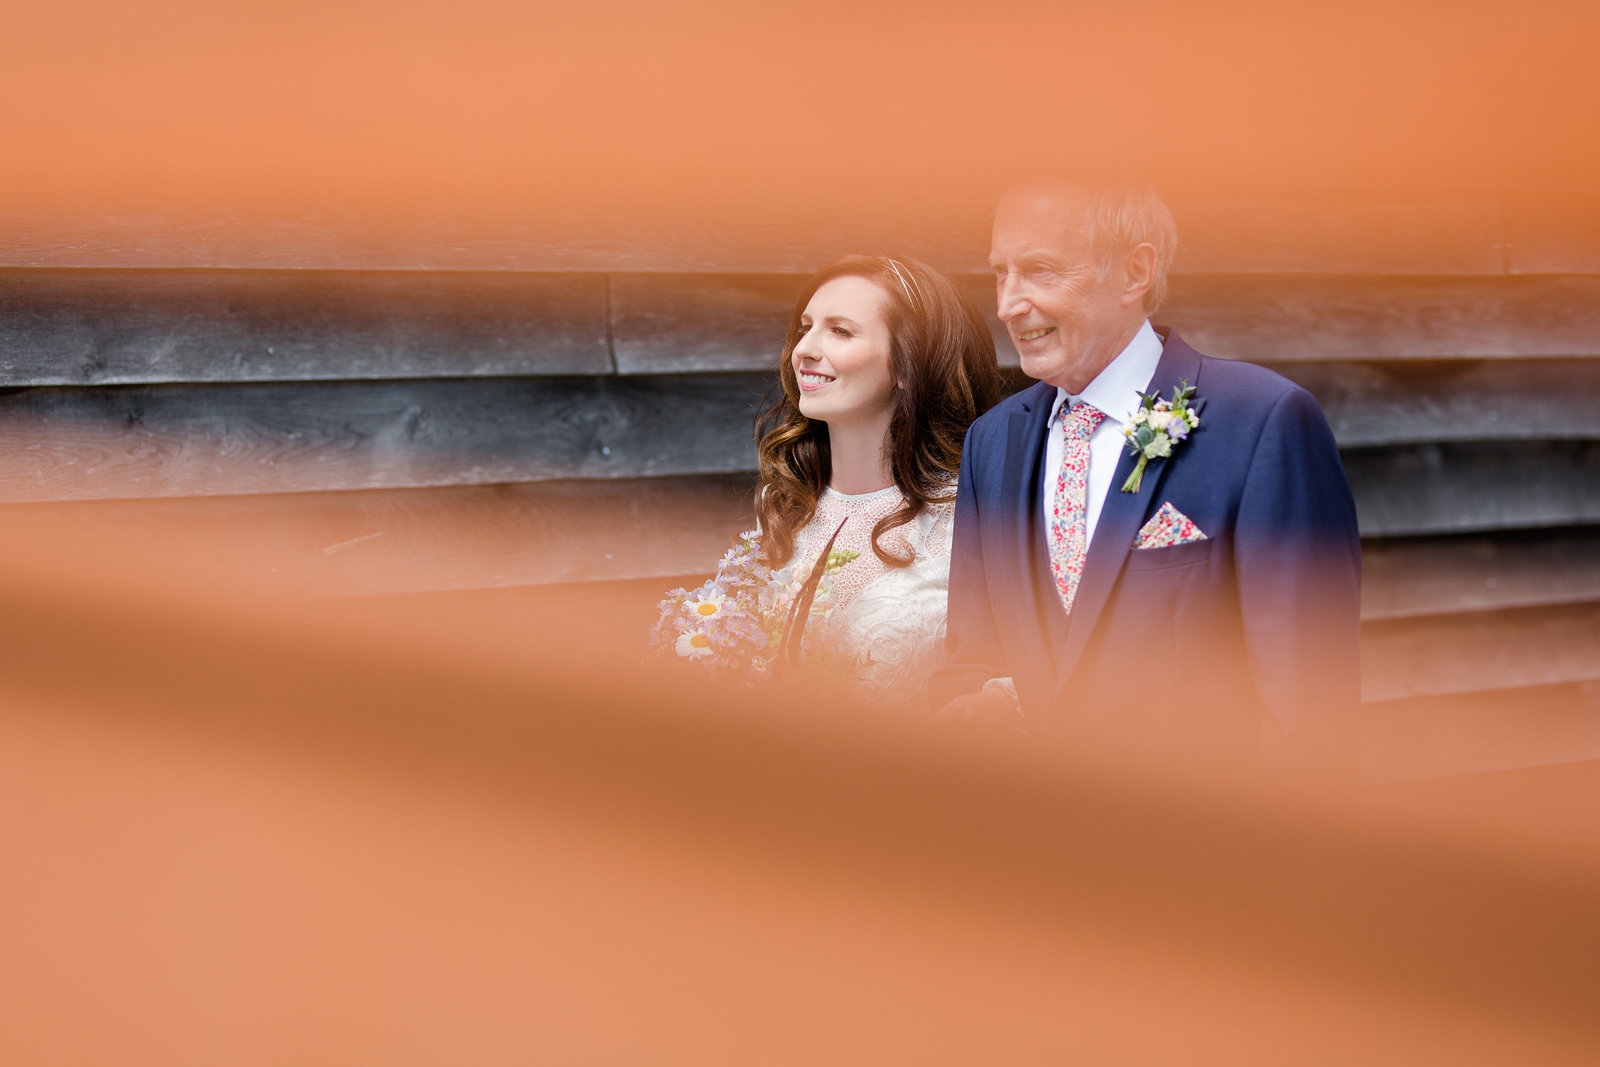 CJS-07-adorlee-wedding-photography